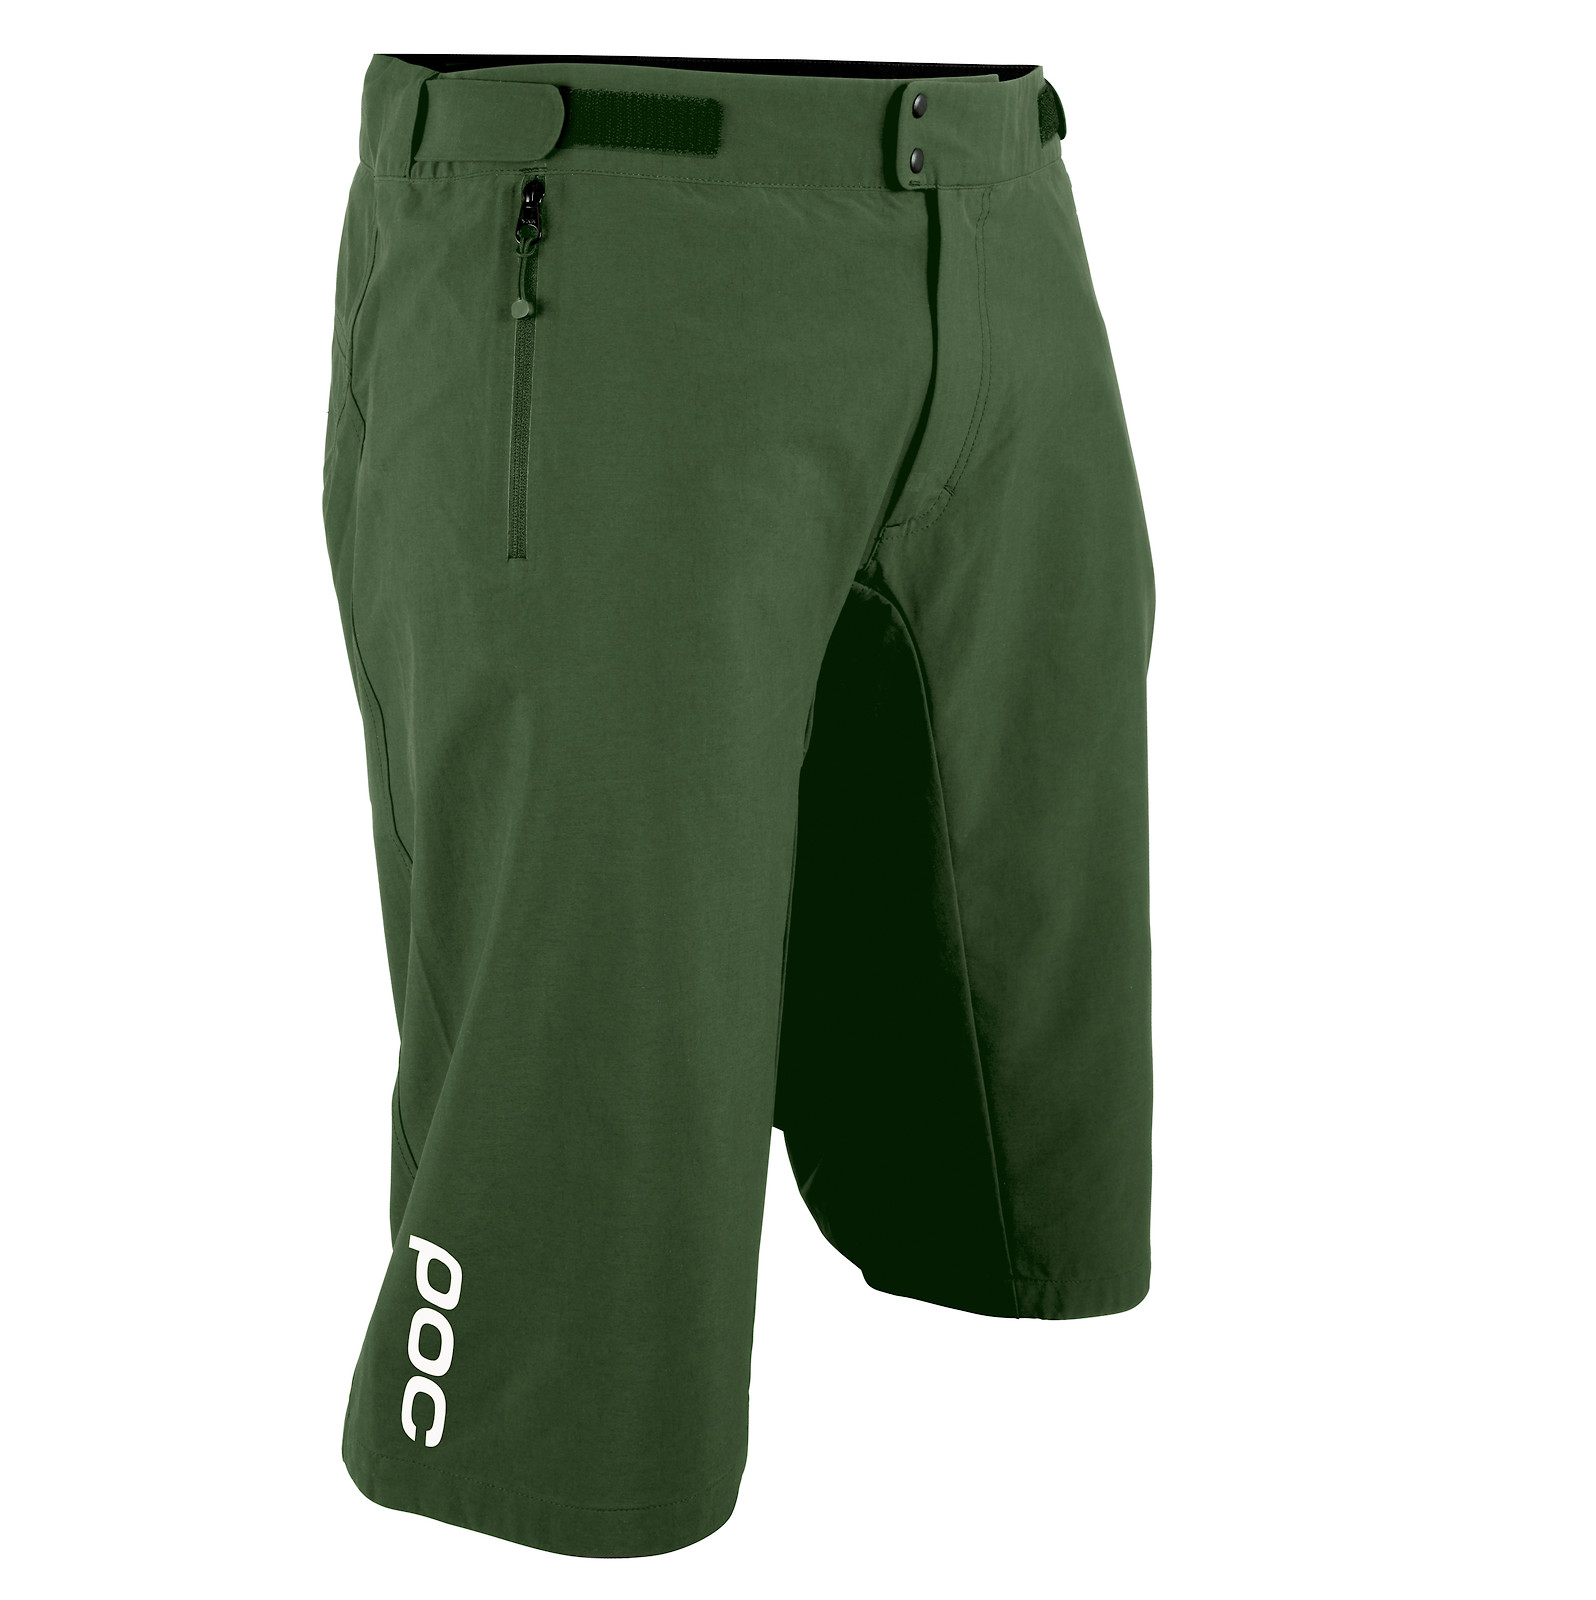 POC Resistance Enduro Light shorts (Septane Green)